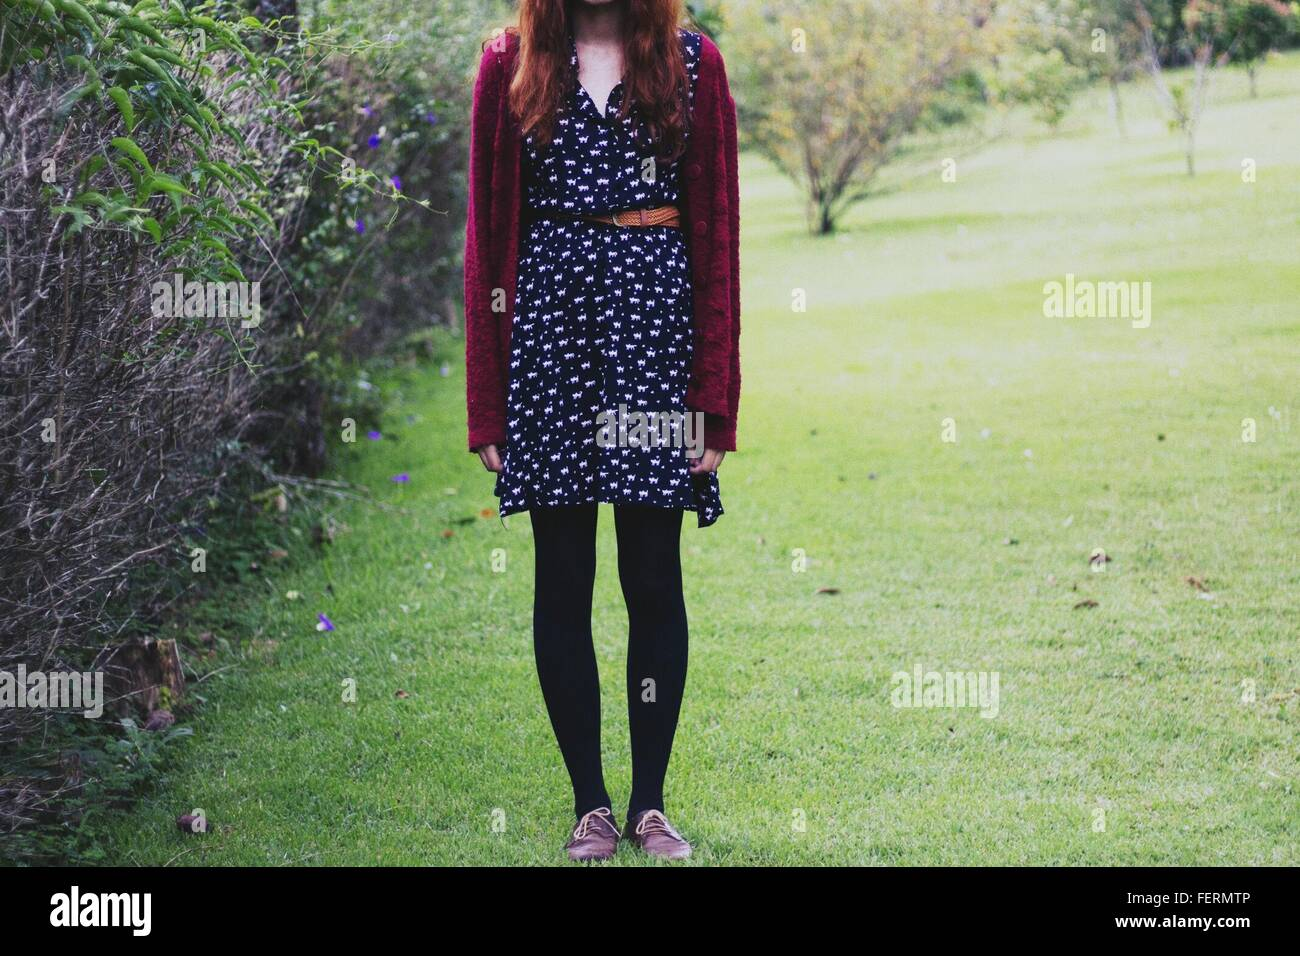 Low Section Of Young Woman On Grassy Field In Park - Stock Image